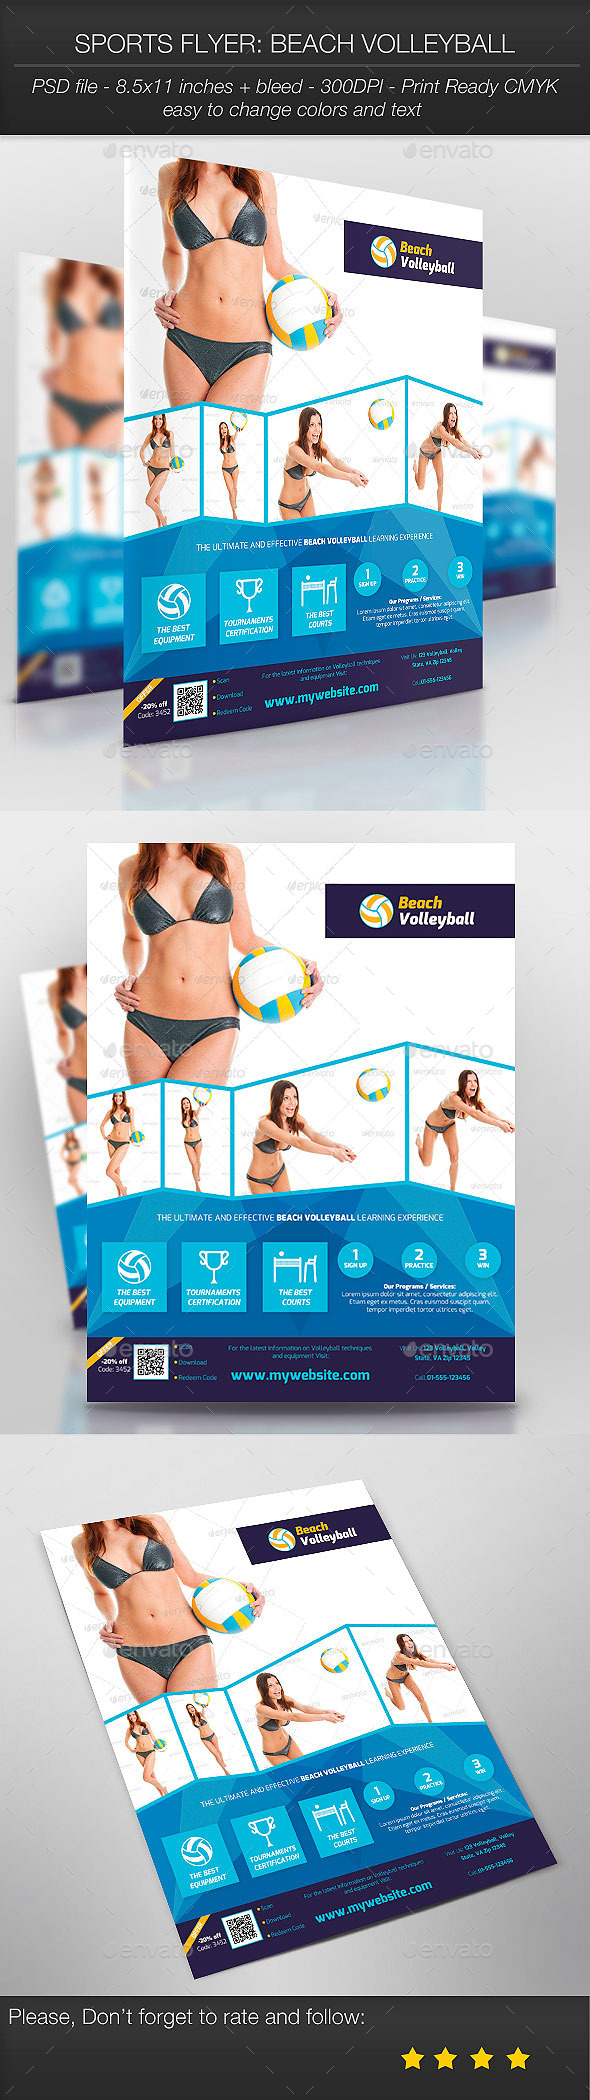 GraphicRiver Sports Flyer Beach Volleyball 9351240